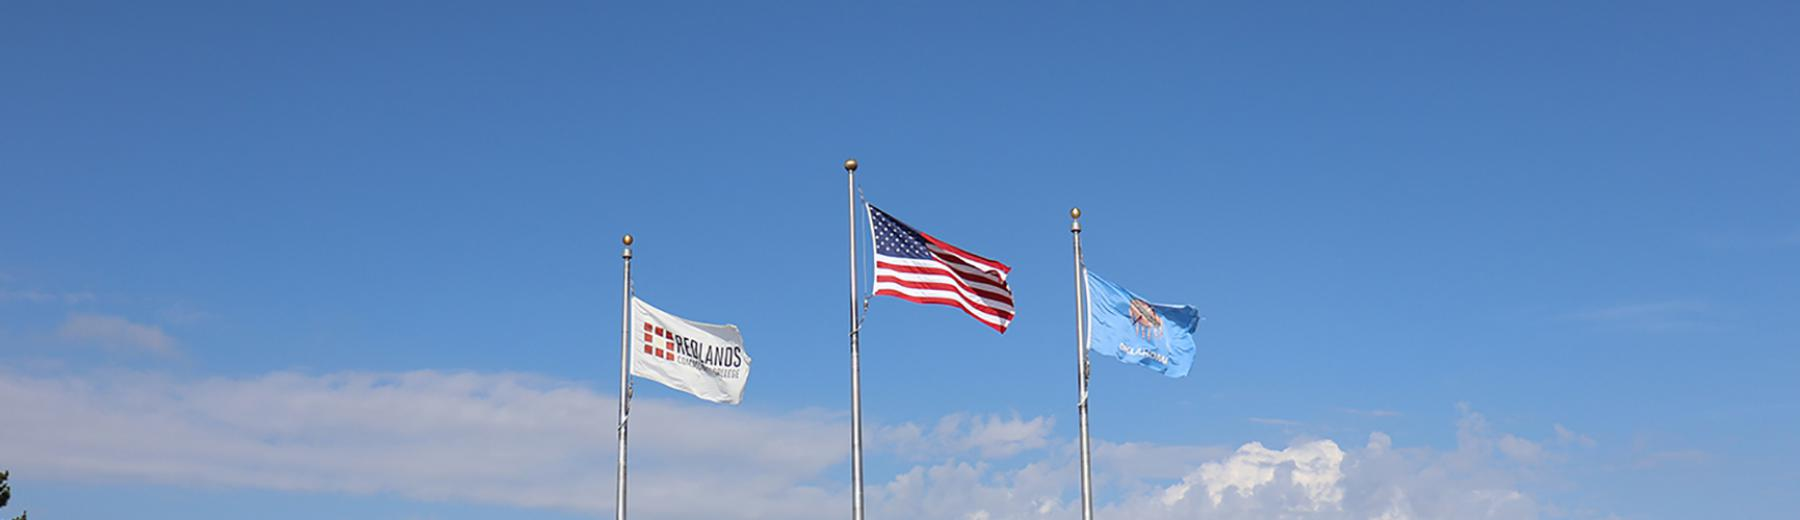 flags flying in front of campus